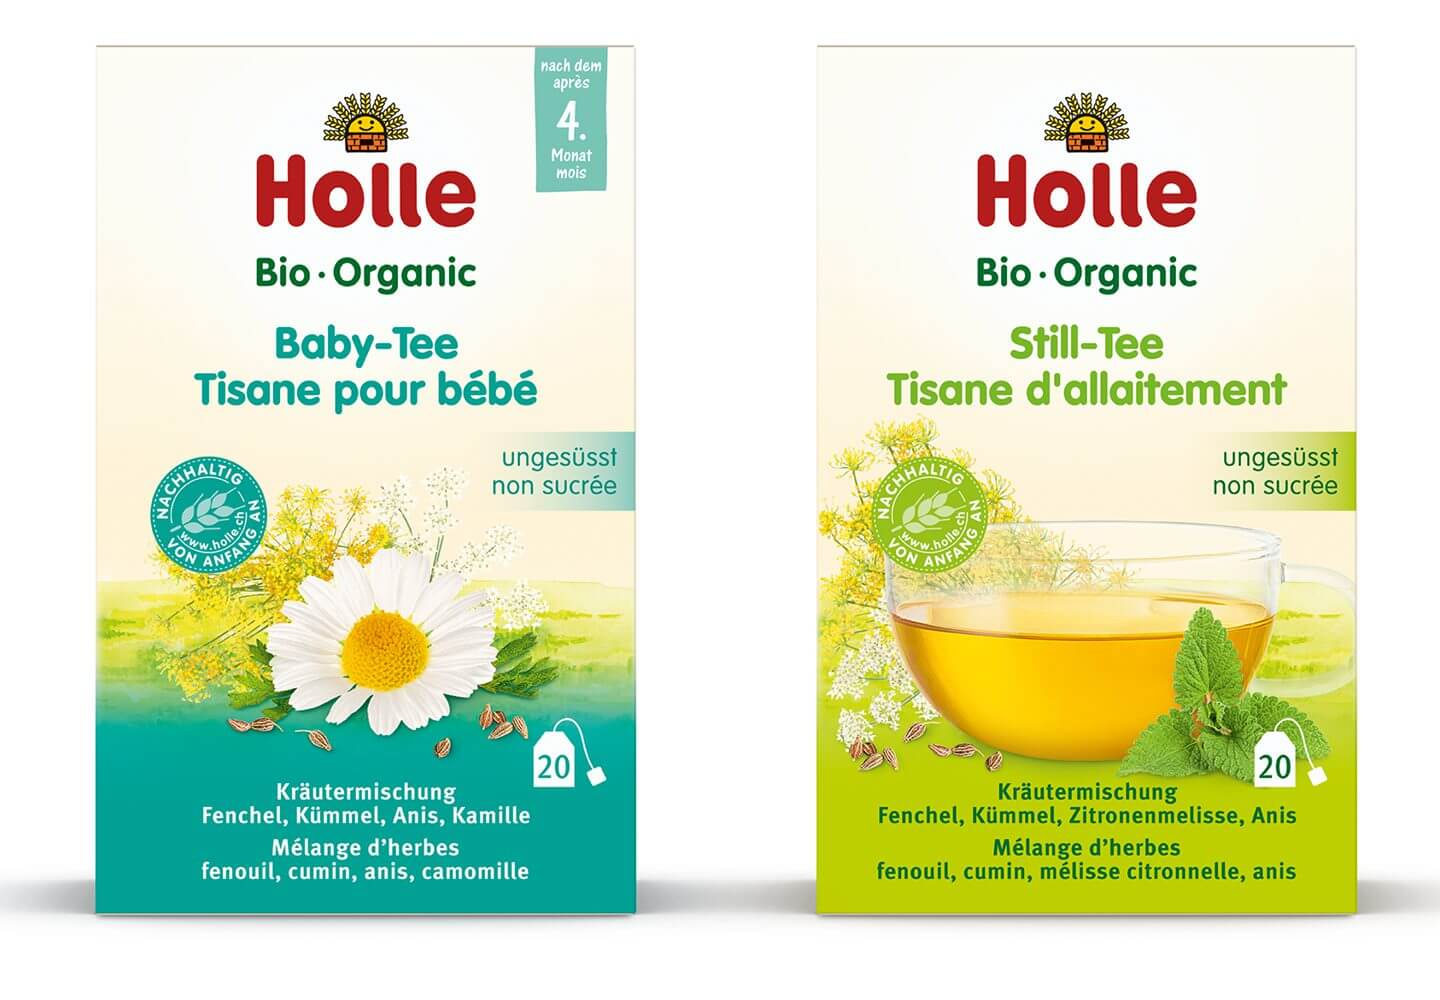 EBEP_181101_Relaunch_Web_Holle_packaging_09